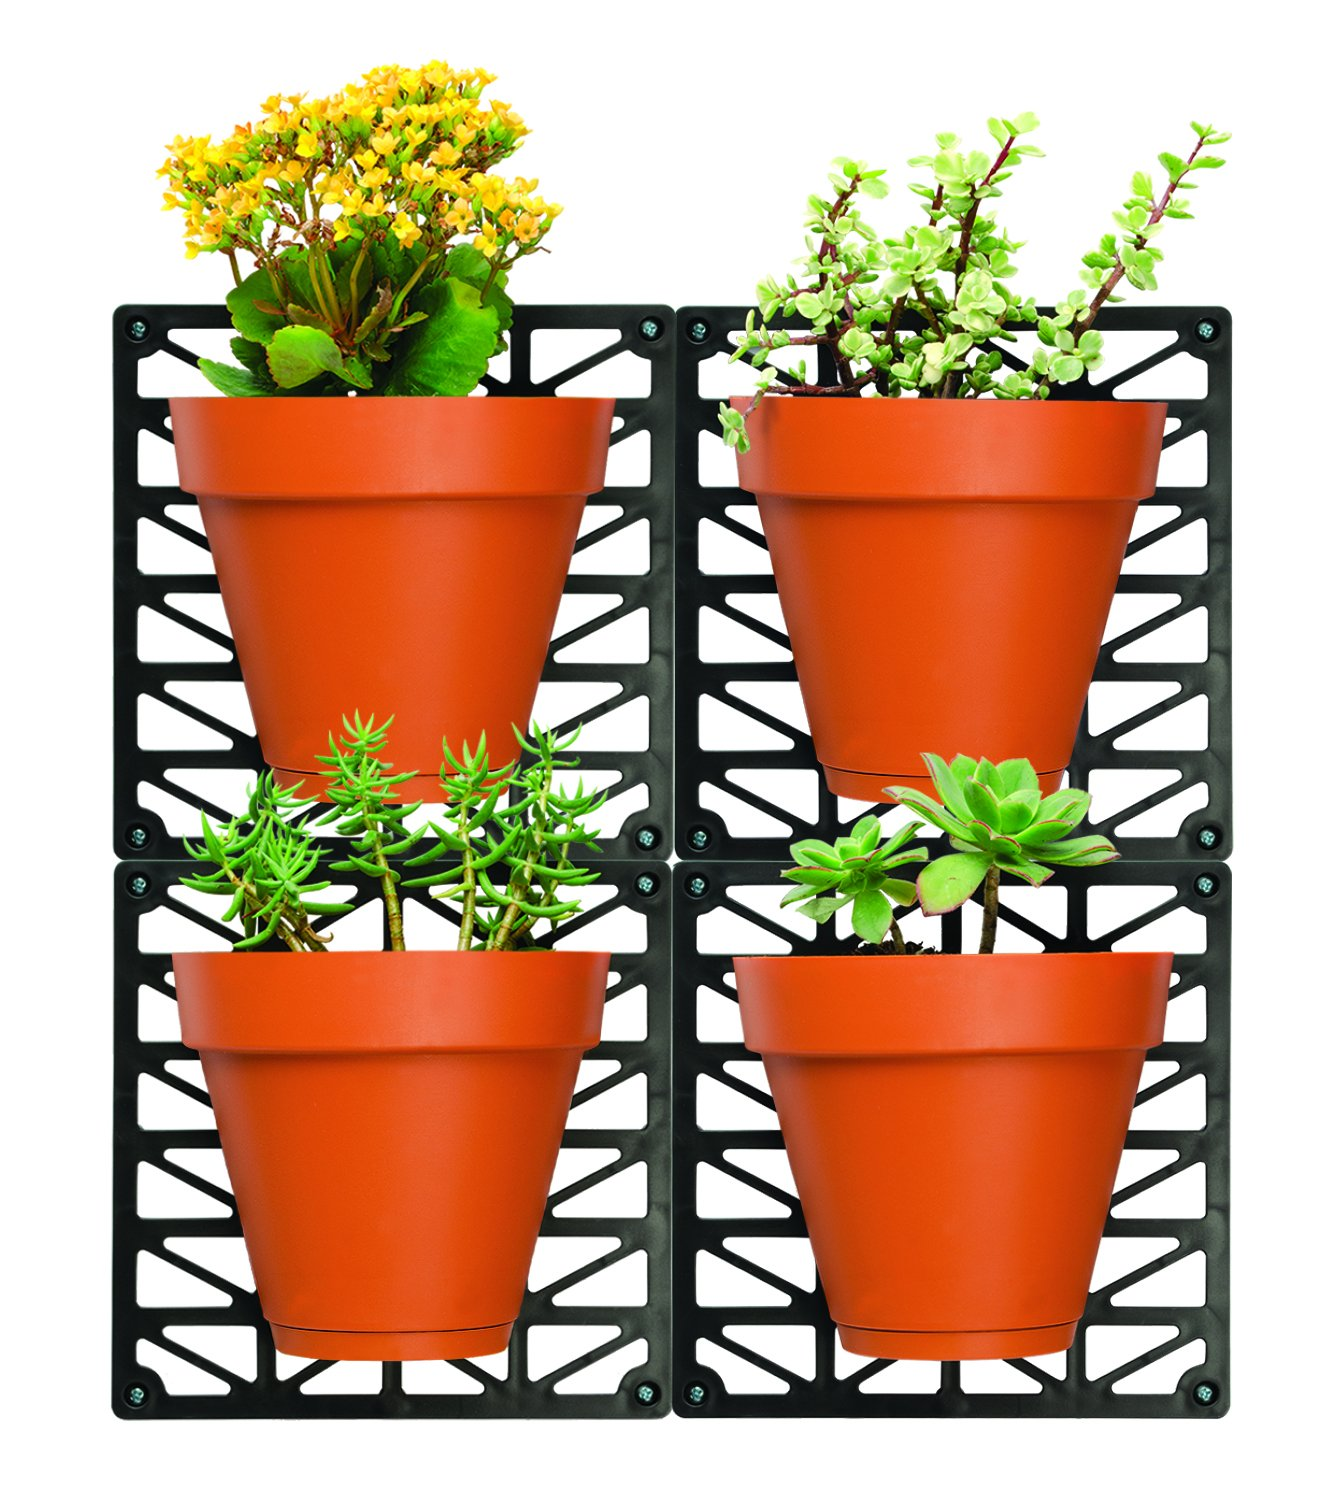 Ideaworks Wall-Mount Planter Set-Decorate Wall with Real Plants - Includes 4 Wall Mounts & 4 Planters-Great for Indoor & Outdoor Walls - Includes Installation Hardware